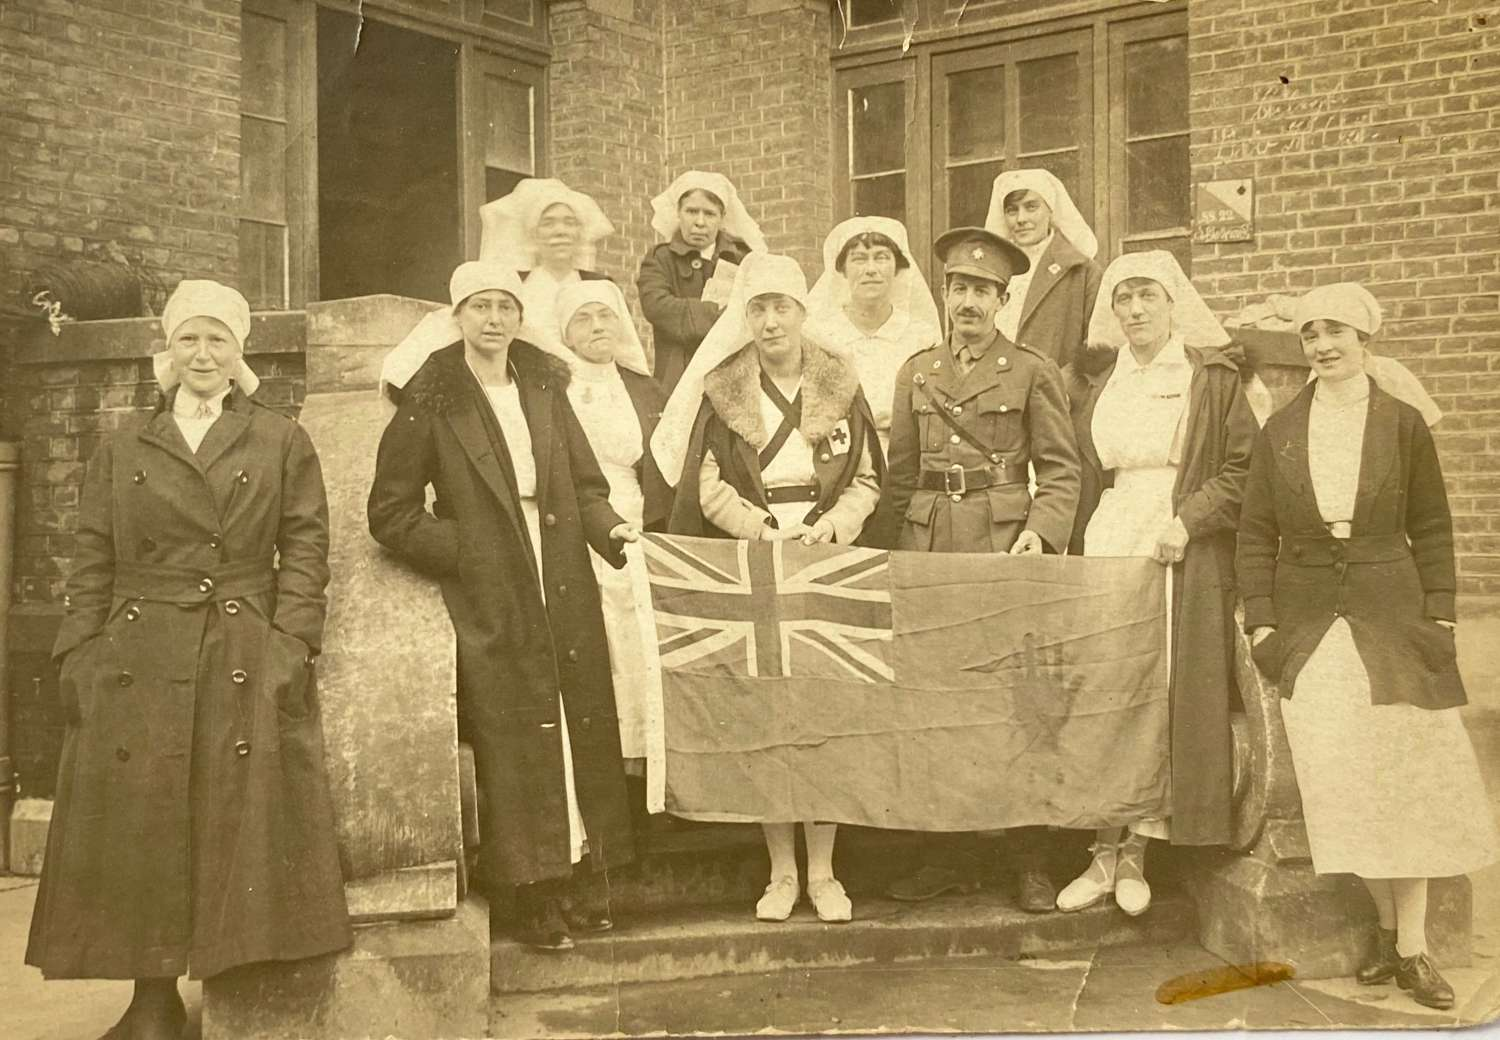 WW1 1918 Ulster VAD Voluntary Aid Detachment Nurse Photograph.